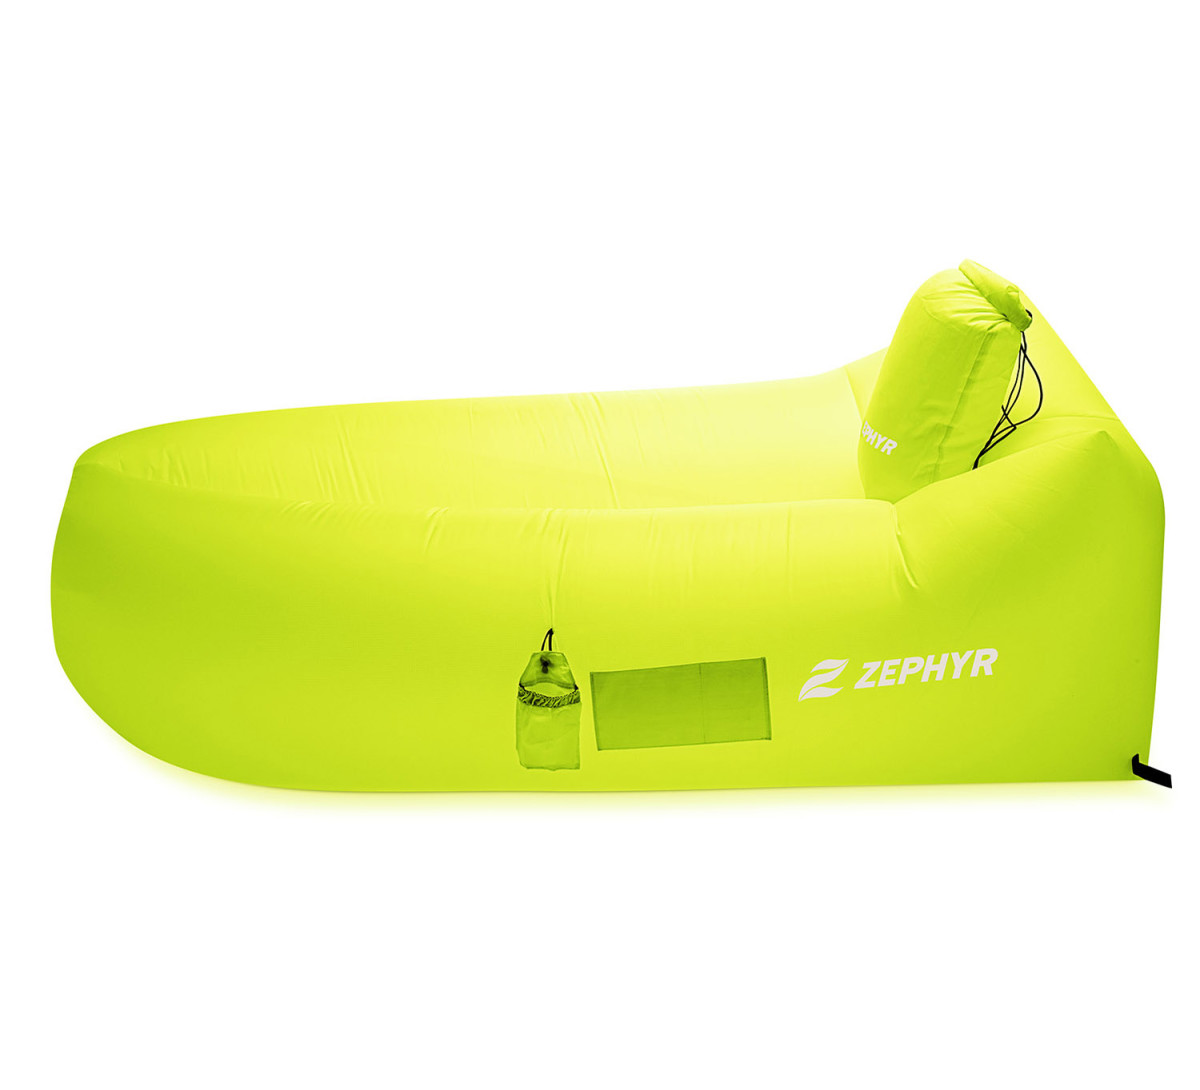 This thing slips into the pillow aka the carrying case, and then right into your bag with ease.